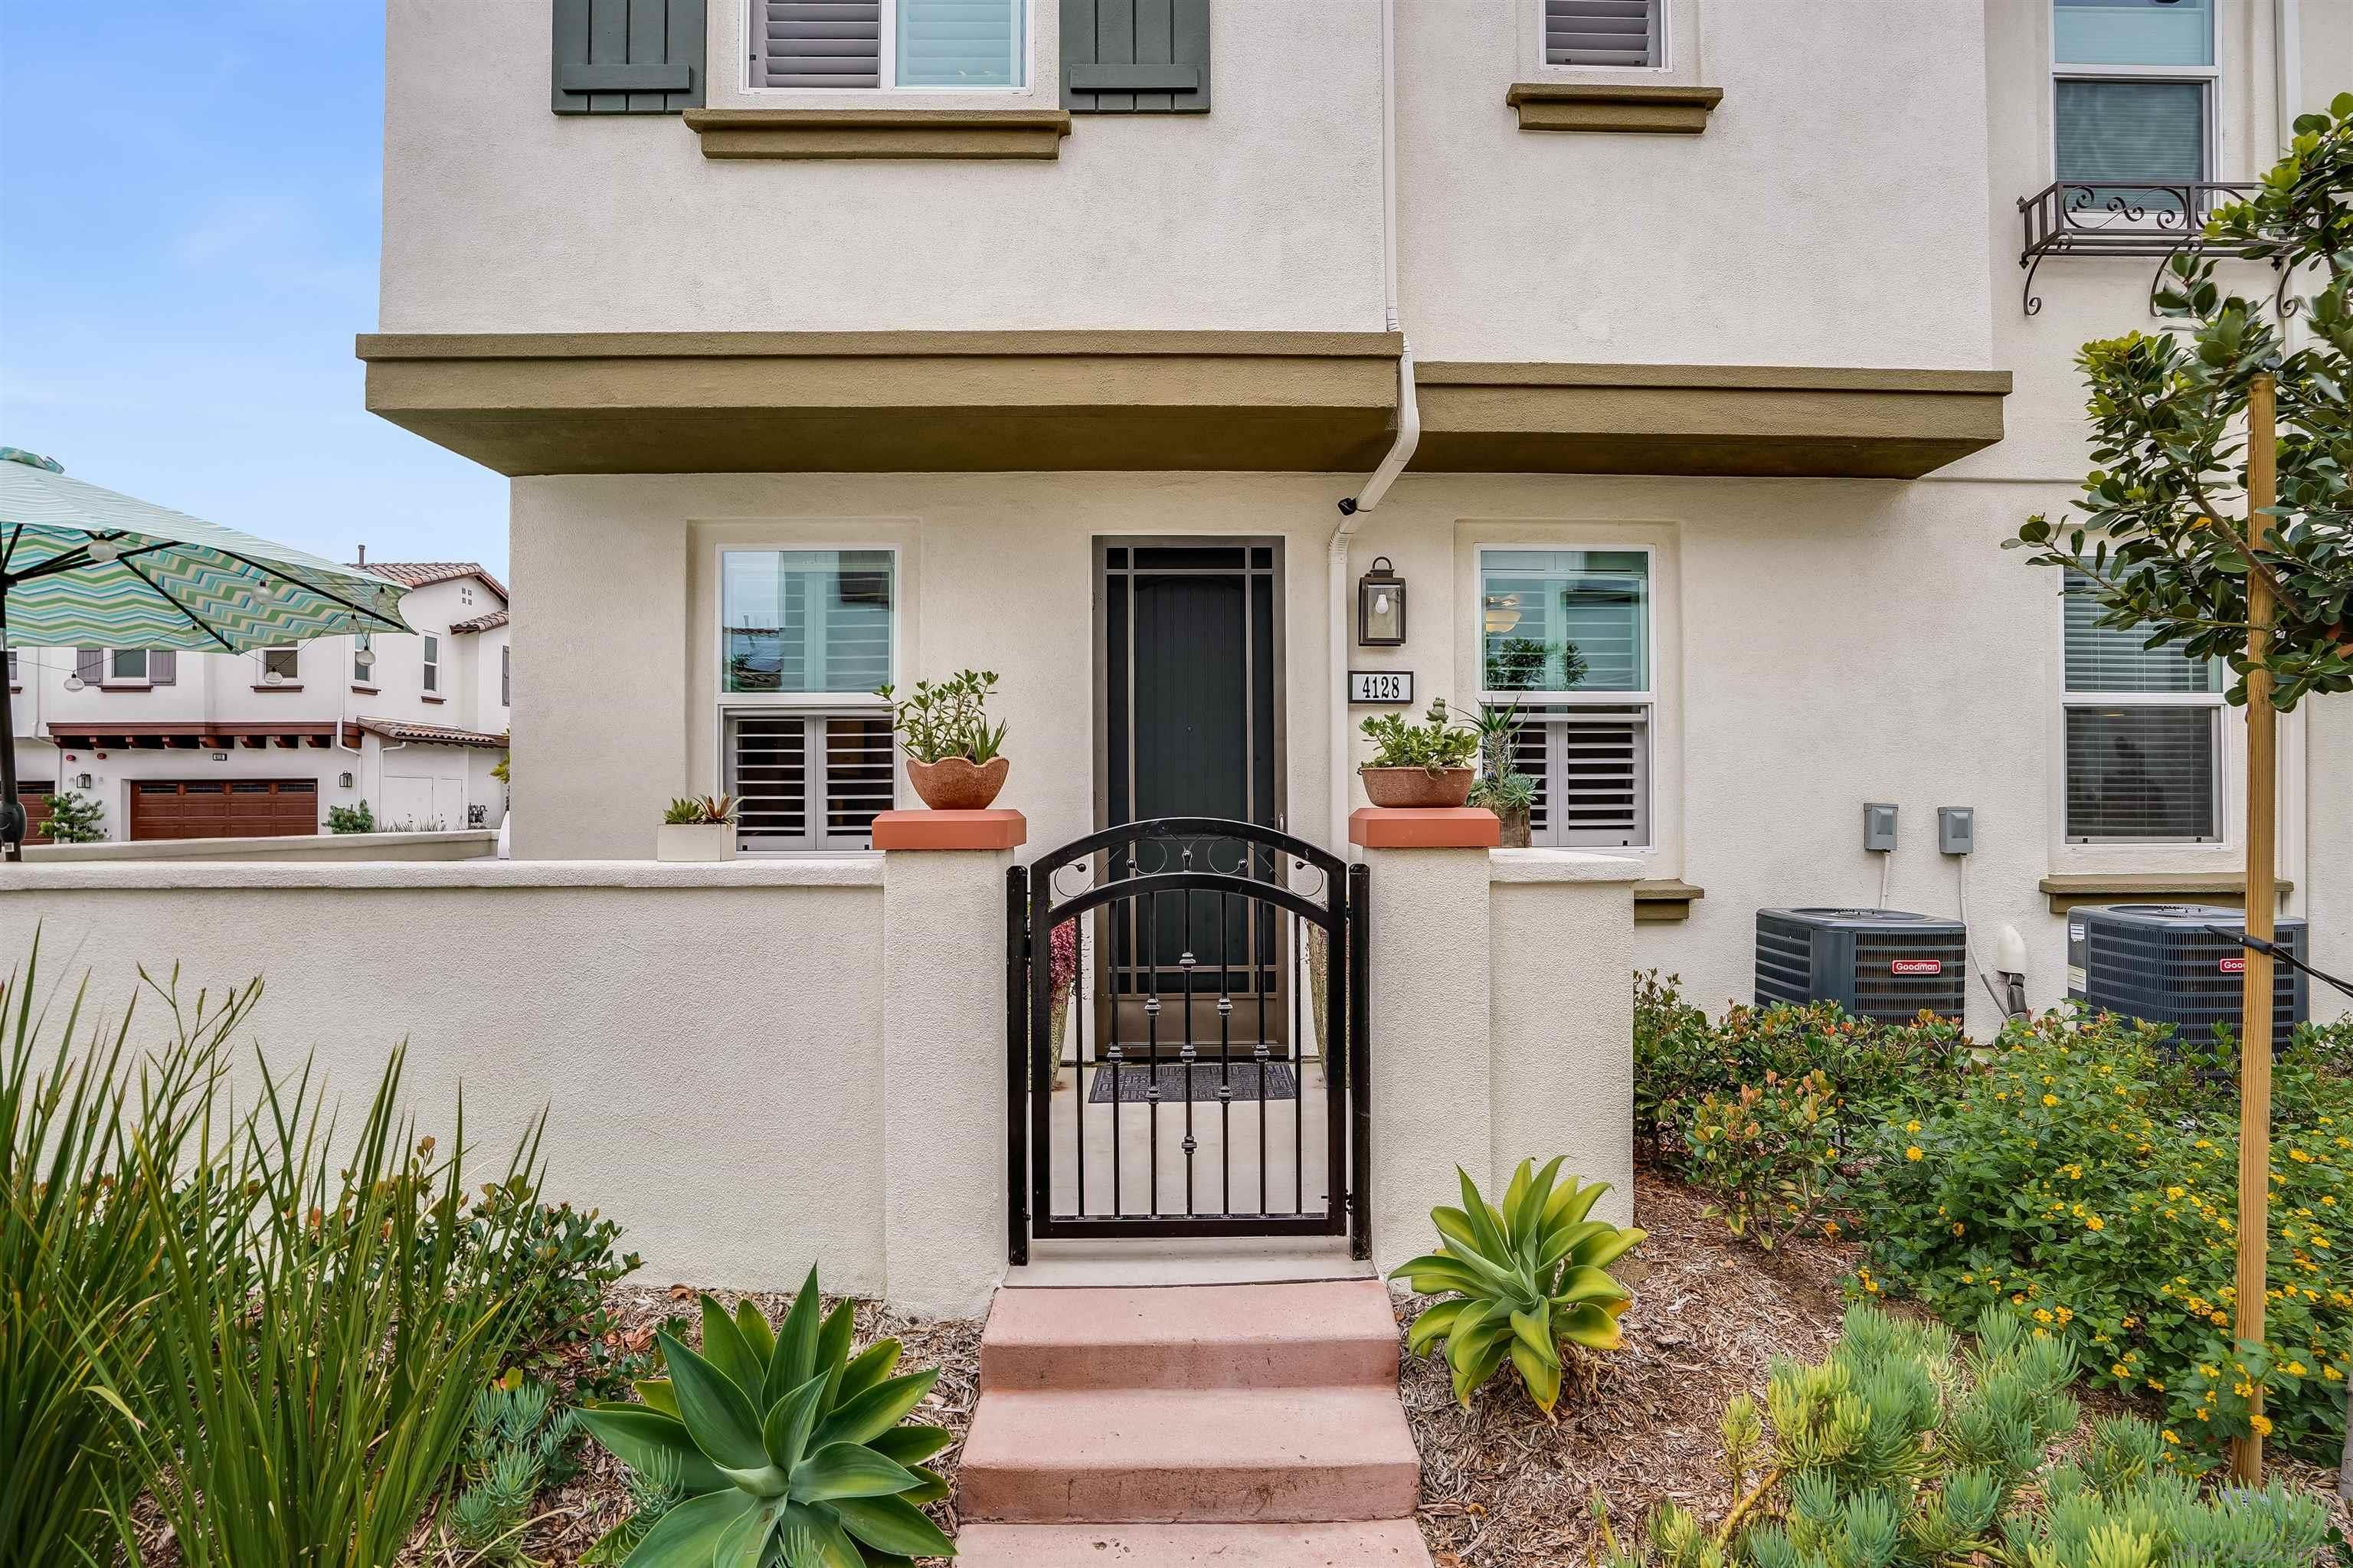 Main Photo: OCEANSIDE Townhouse for sale : 3 bedrooms : 4128 Rio Azul Way